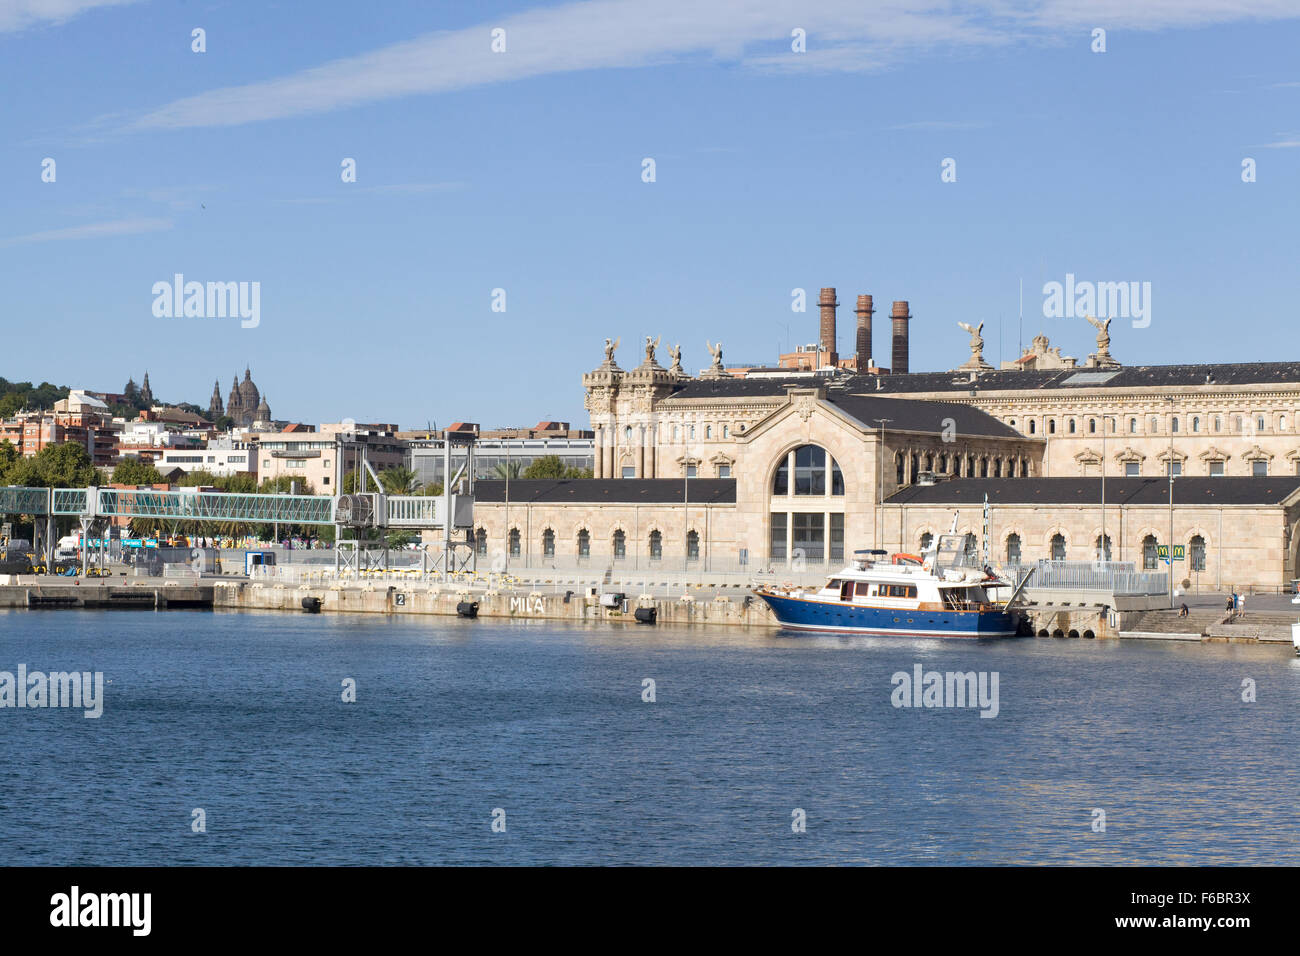 old Port Authority building with a police boat in the water - Stock Image